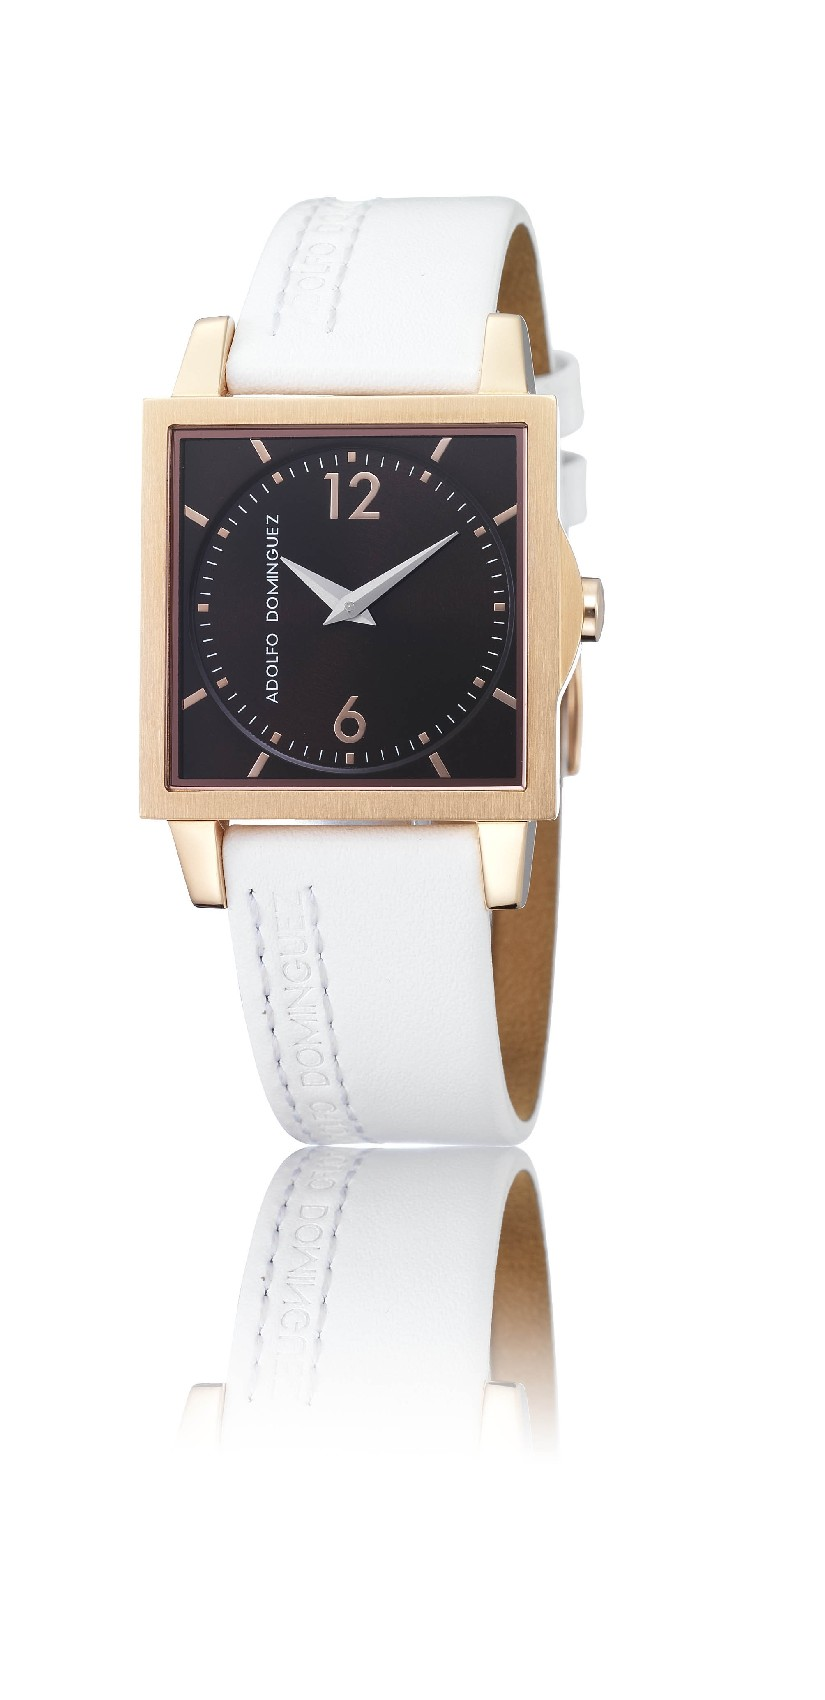 Buy cheap jewels and cheap watches offers discount for Reloj adolfo dominguez 95001